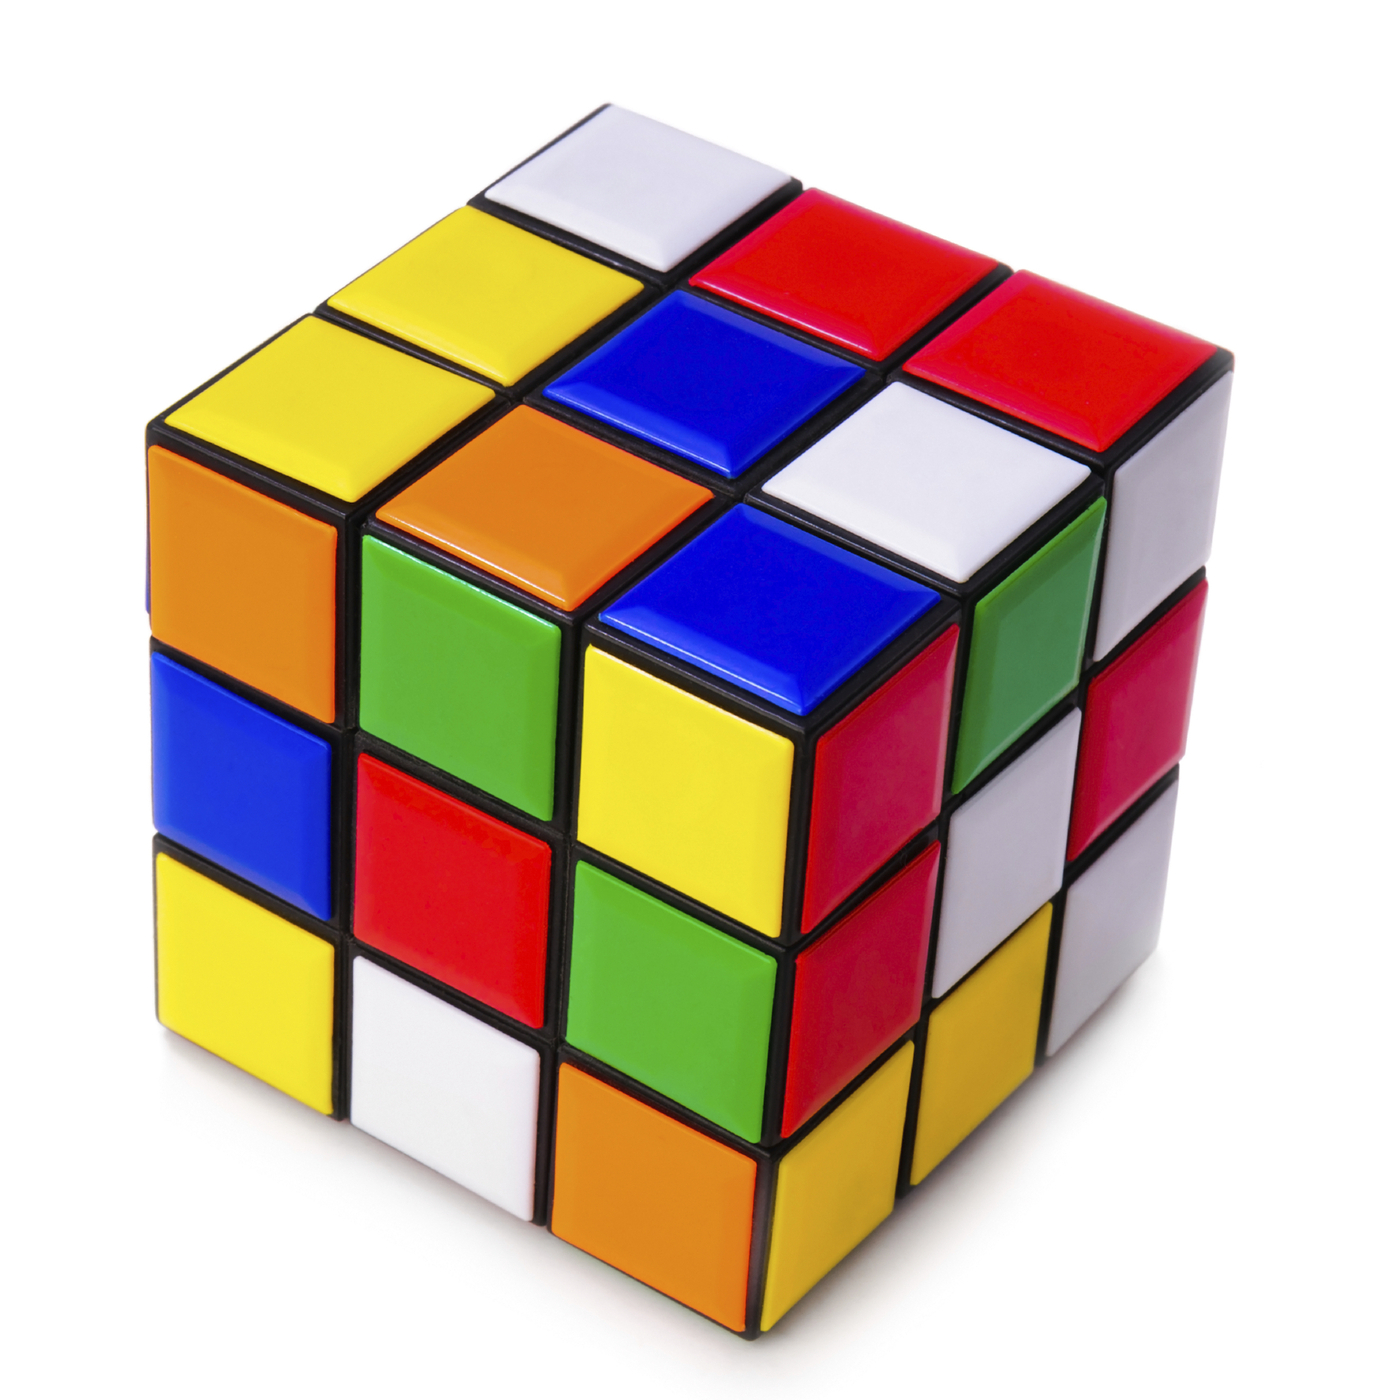 for the rubik 39 s cube world champ 6 seconds is plenty of. Black Bedroom Furniture Sets. Home Design Ideas